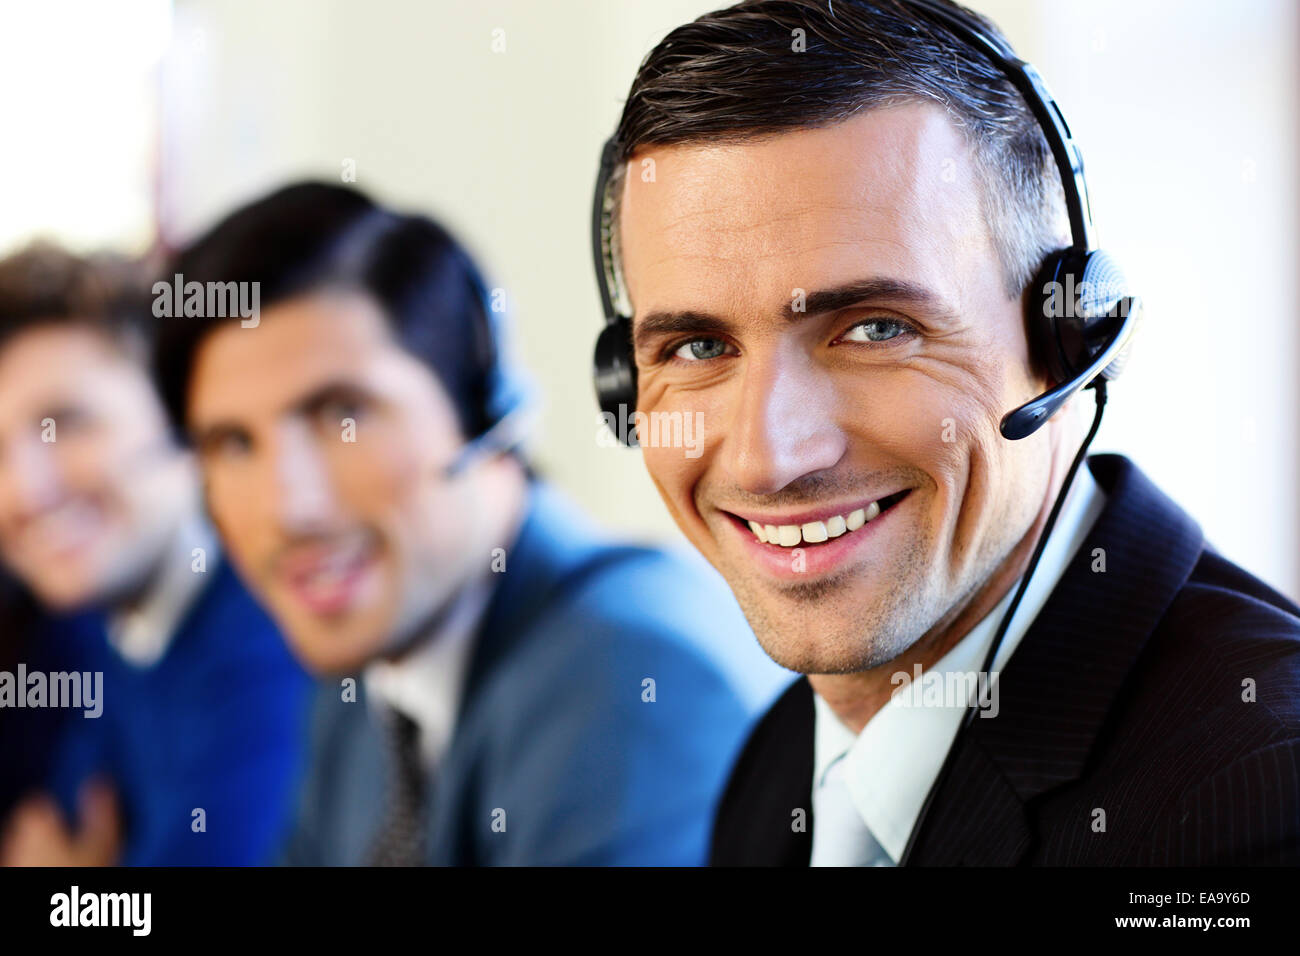 Smiling young businesspeople and colleagues in a call center office - Stock Image